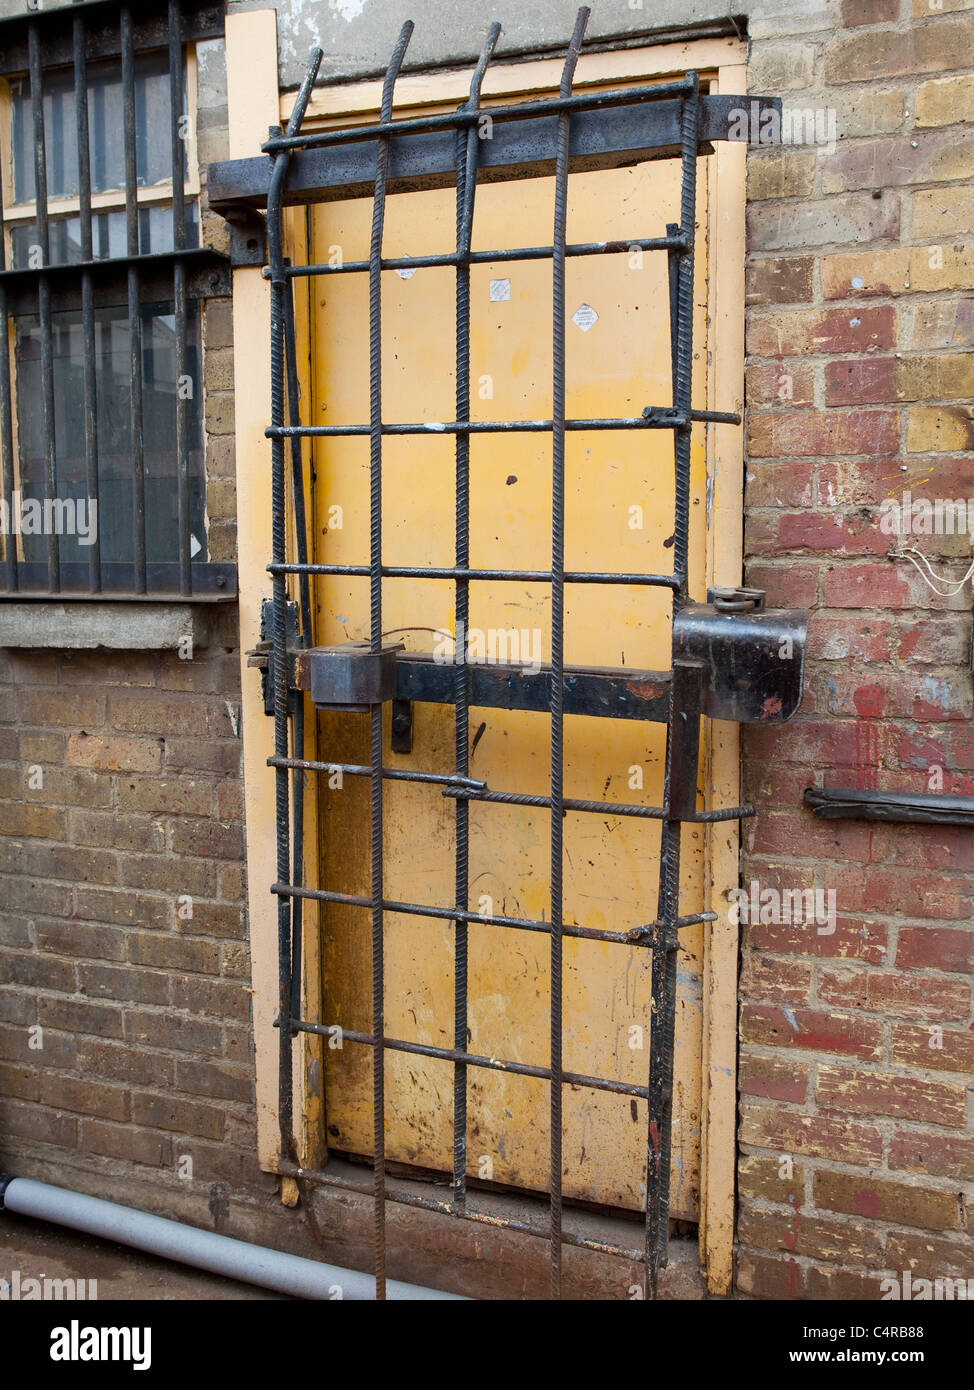 Heavily secured door & Heavily secured door Stock Photo: 37393112 - Alamy